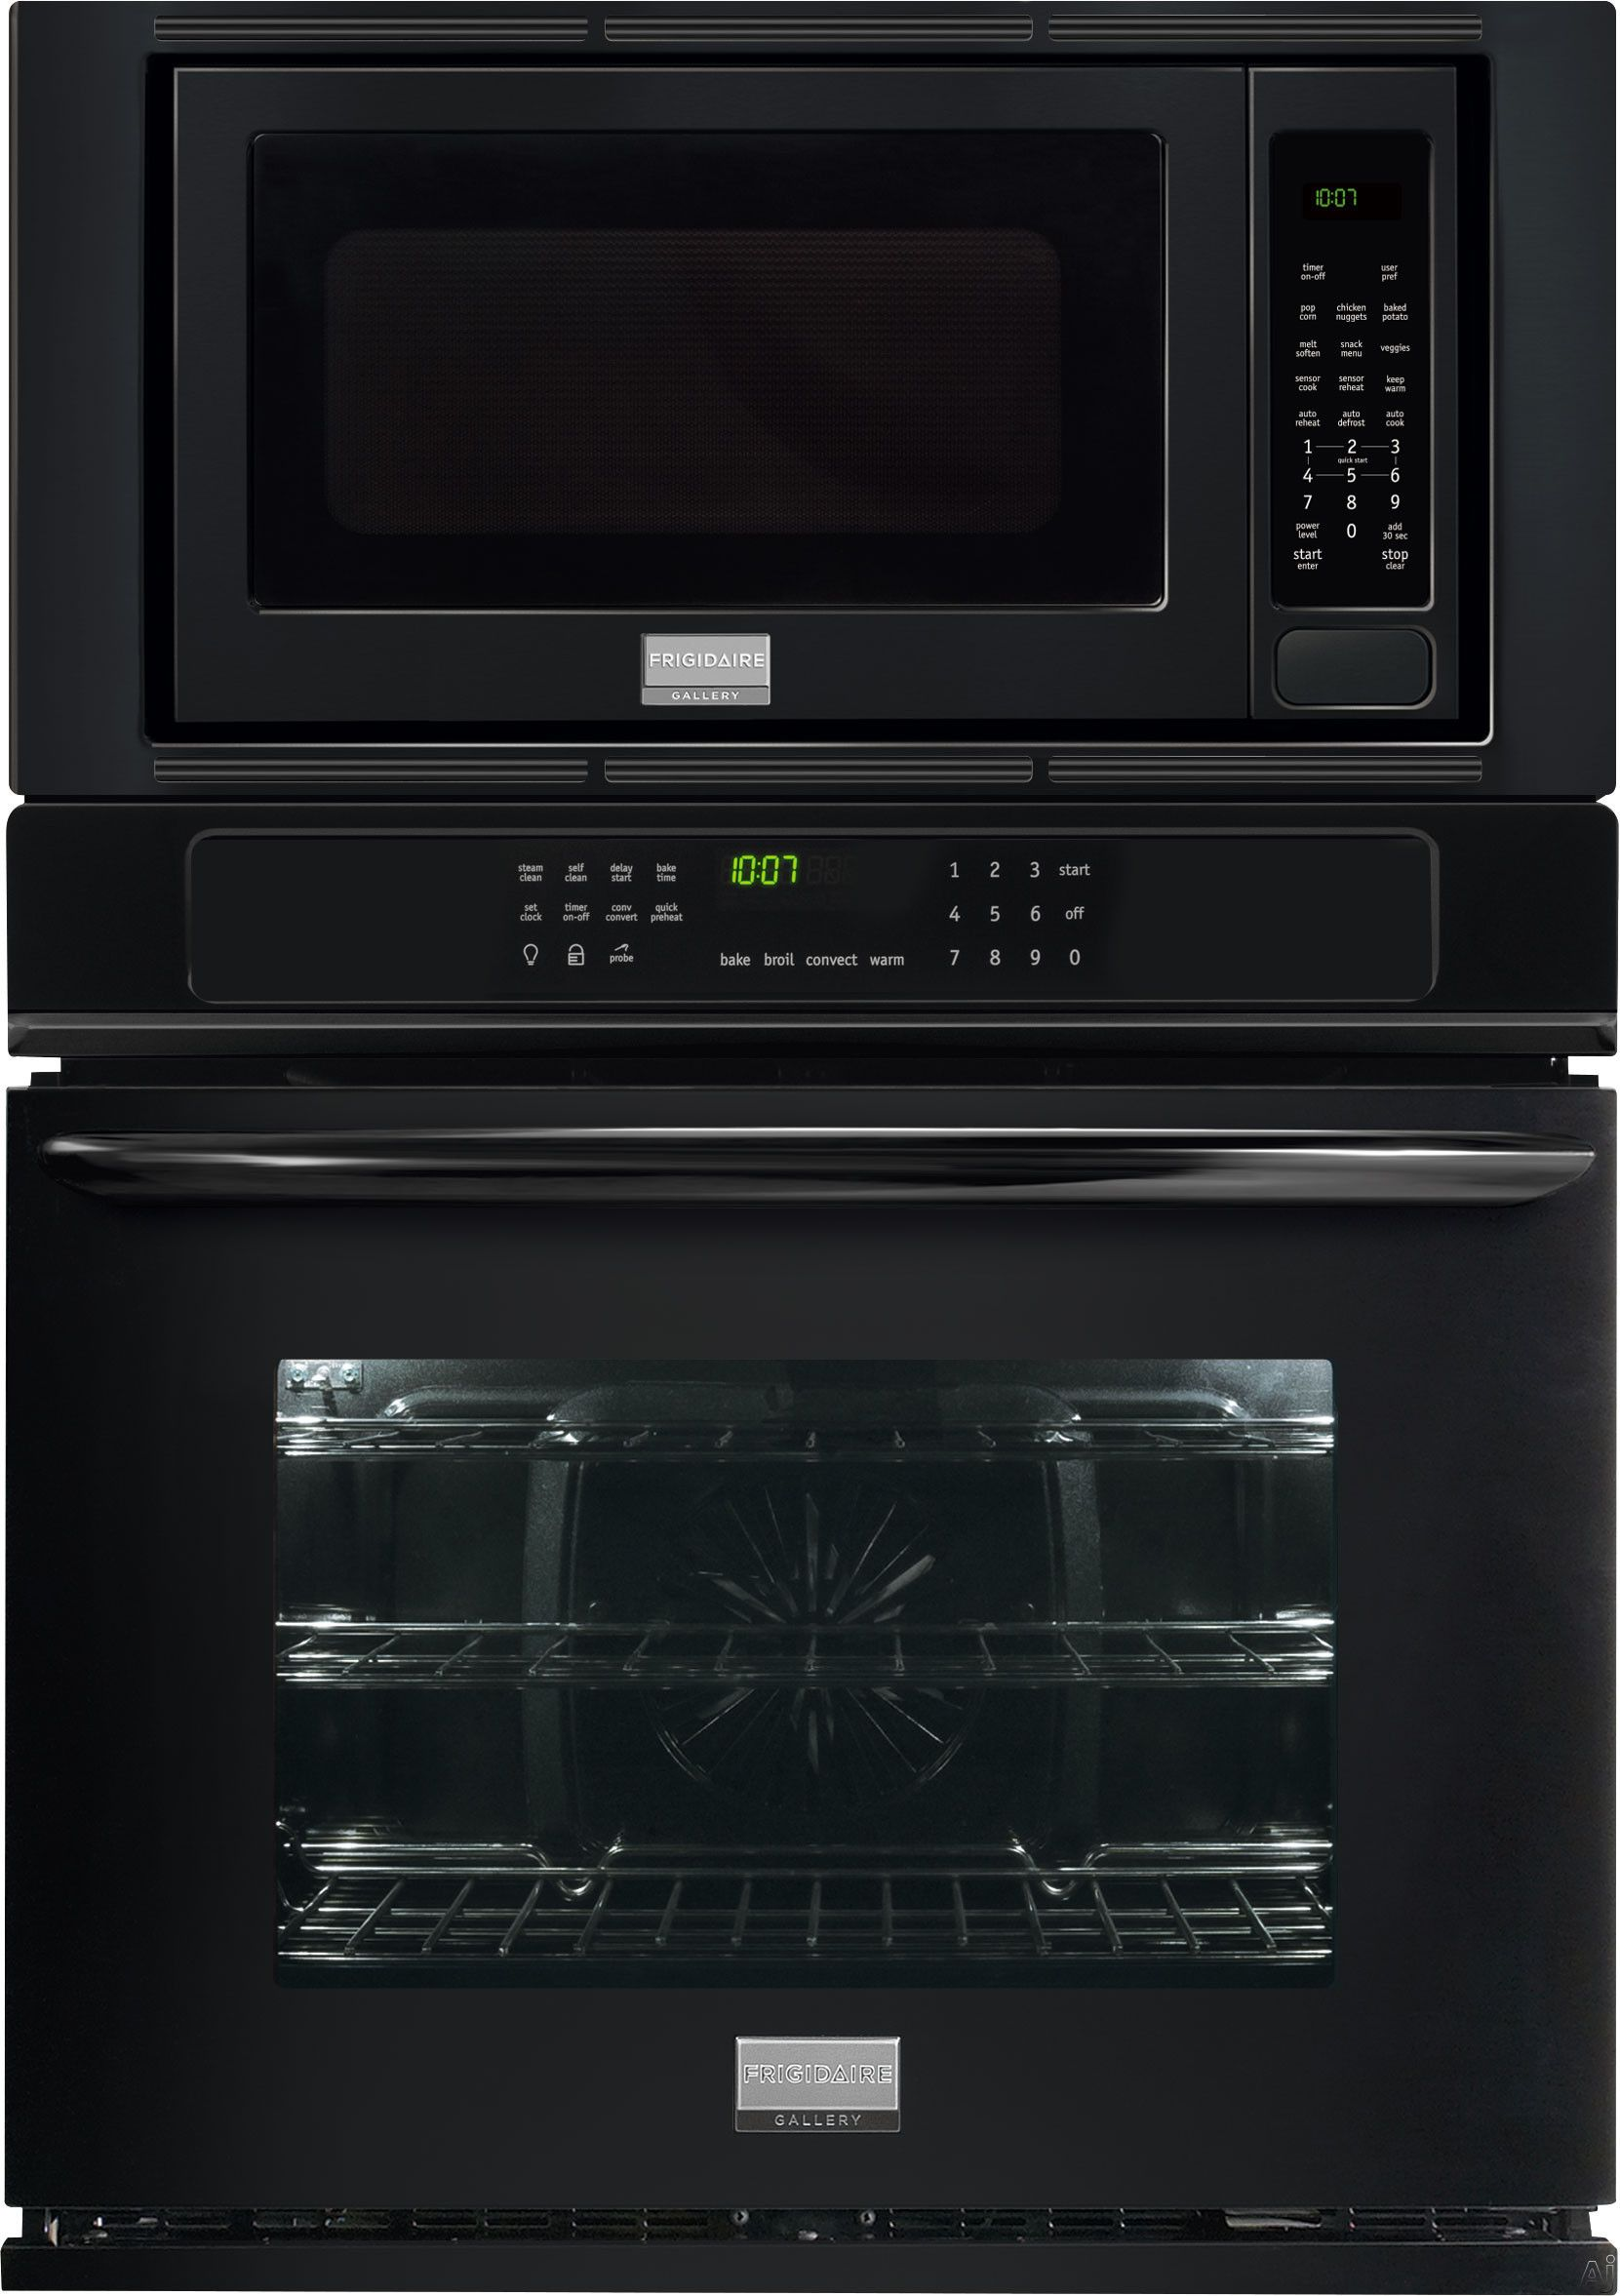 Frigidaire Fgmc2765pb 27 Combination Wall Oven With 3 8 Cu Ft True Convection Oven Convection Wall Oven Electric Convection Oven Microwave Combination Oven